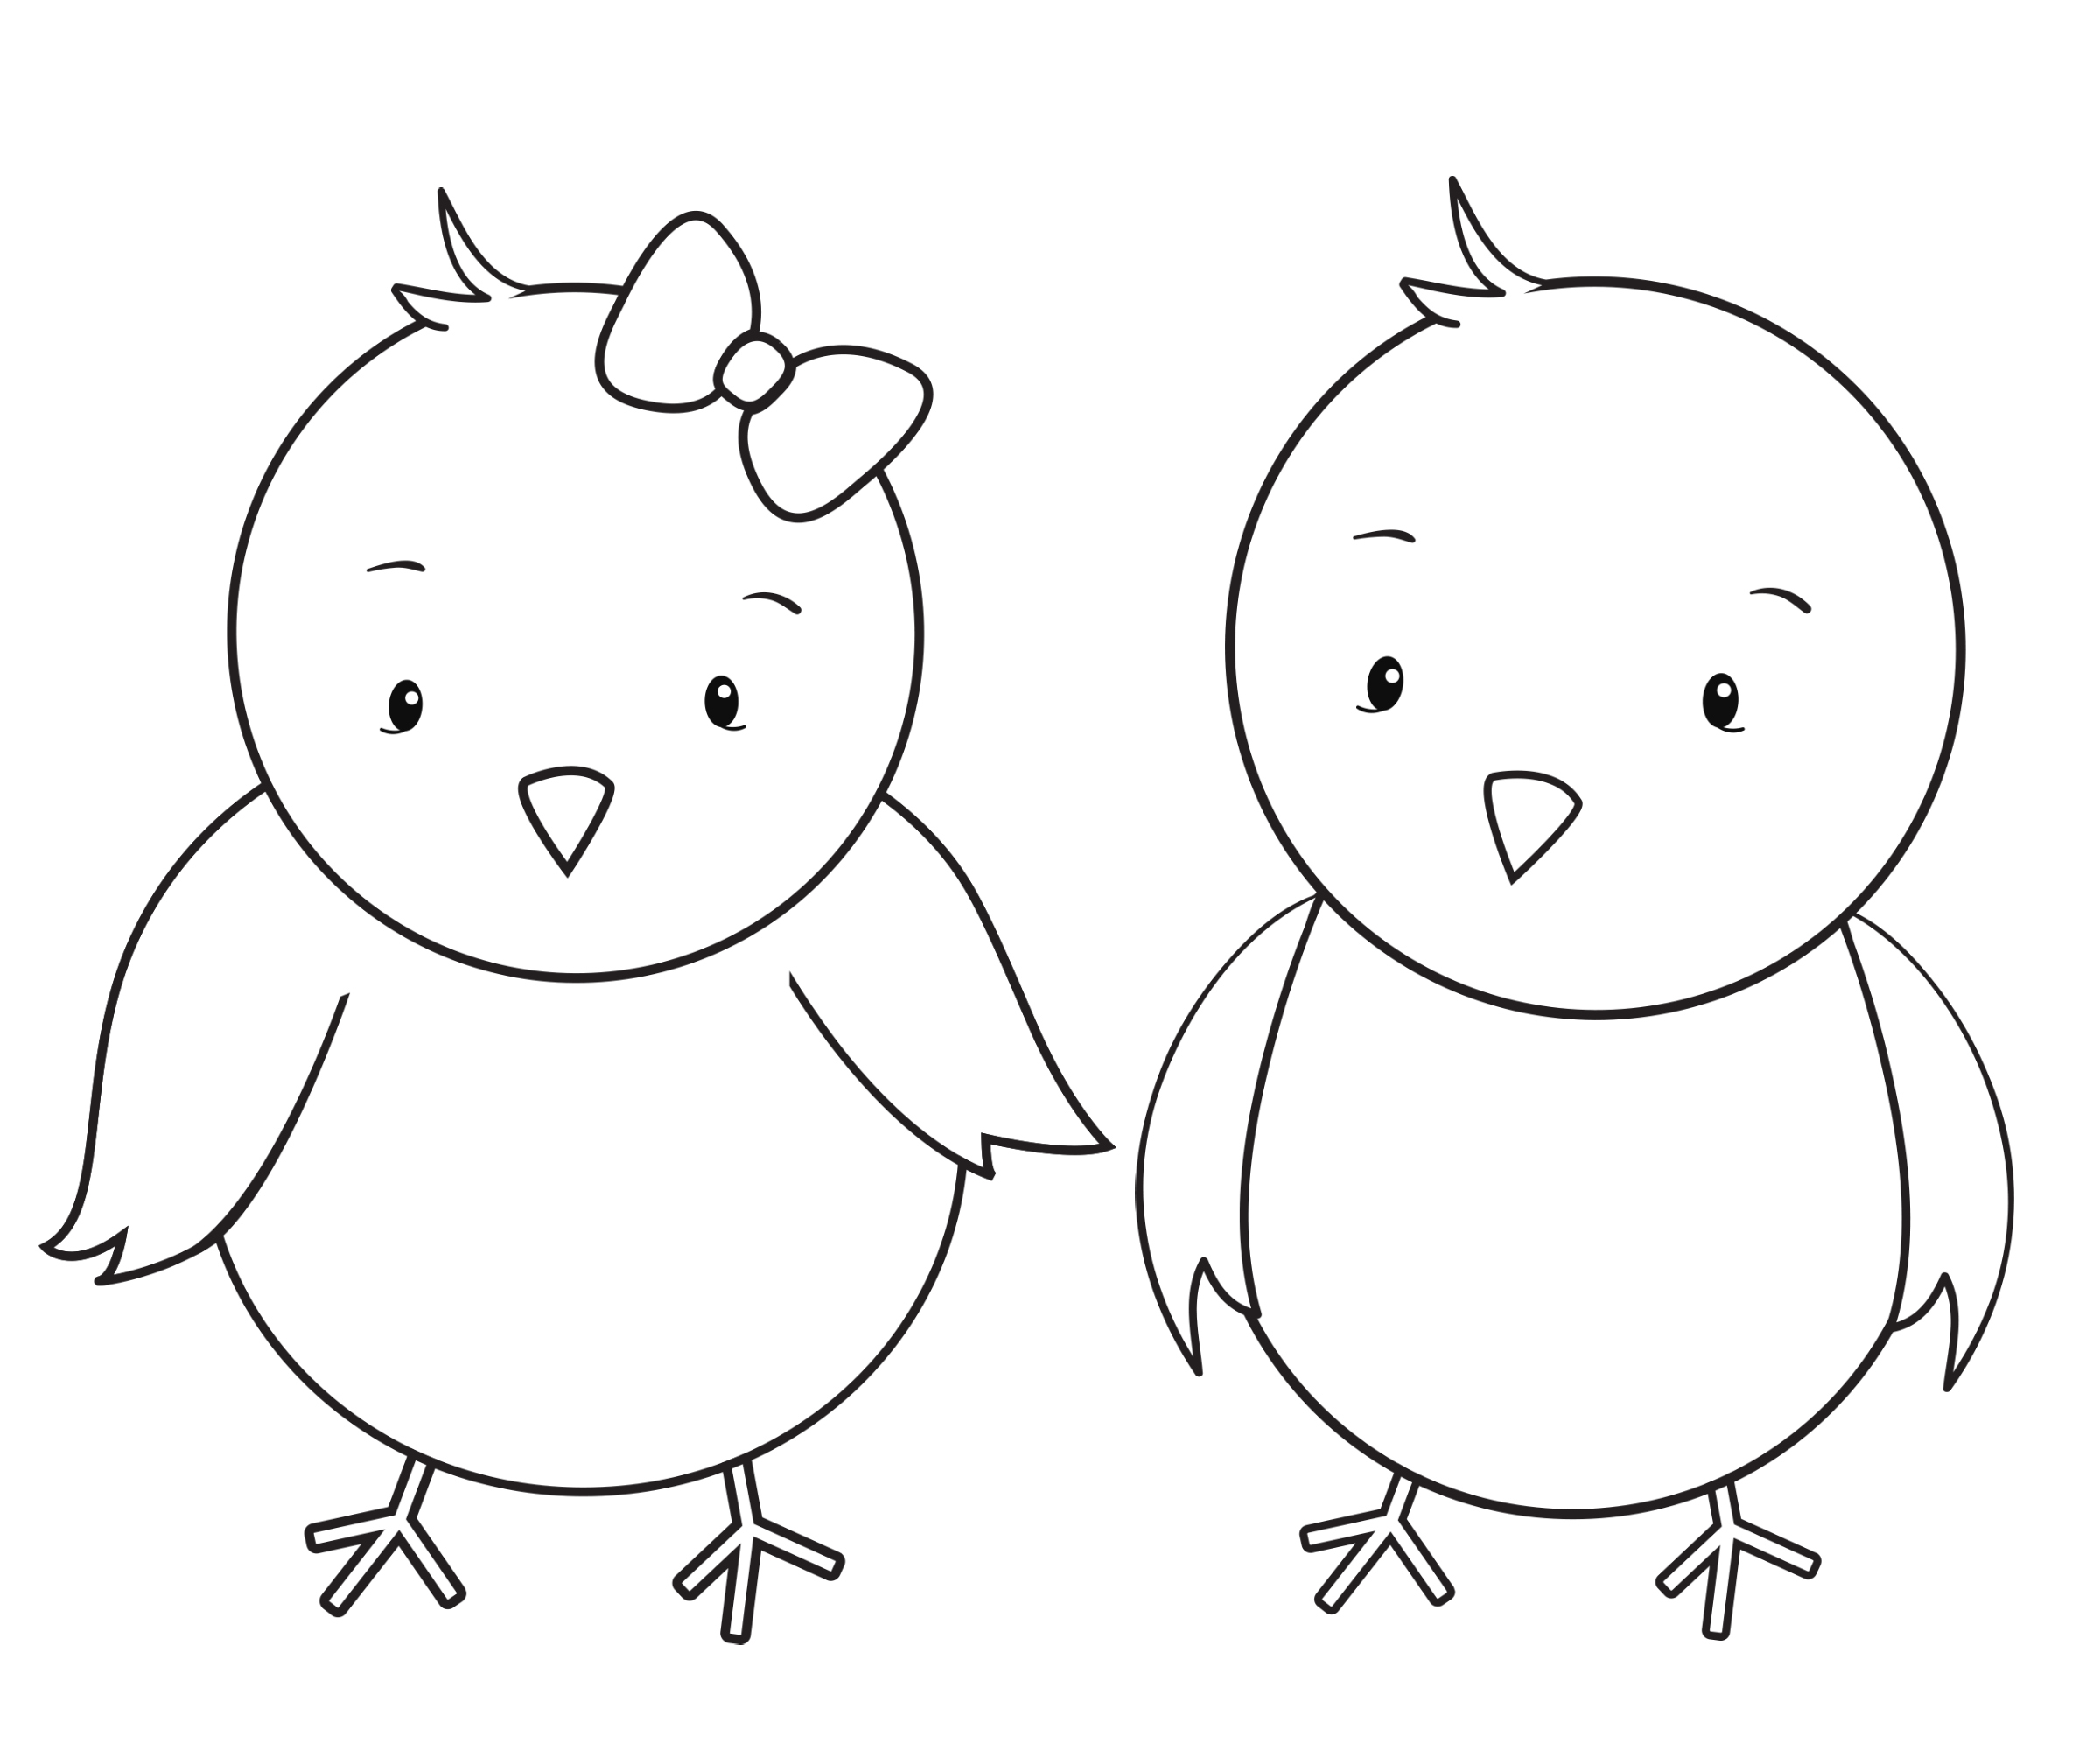 coloring book pages for easter - photo#23